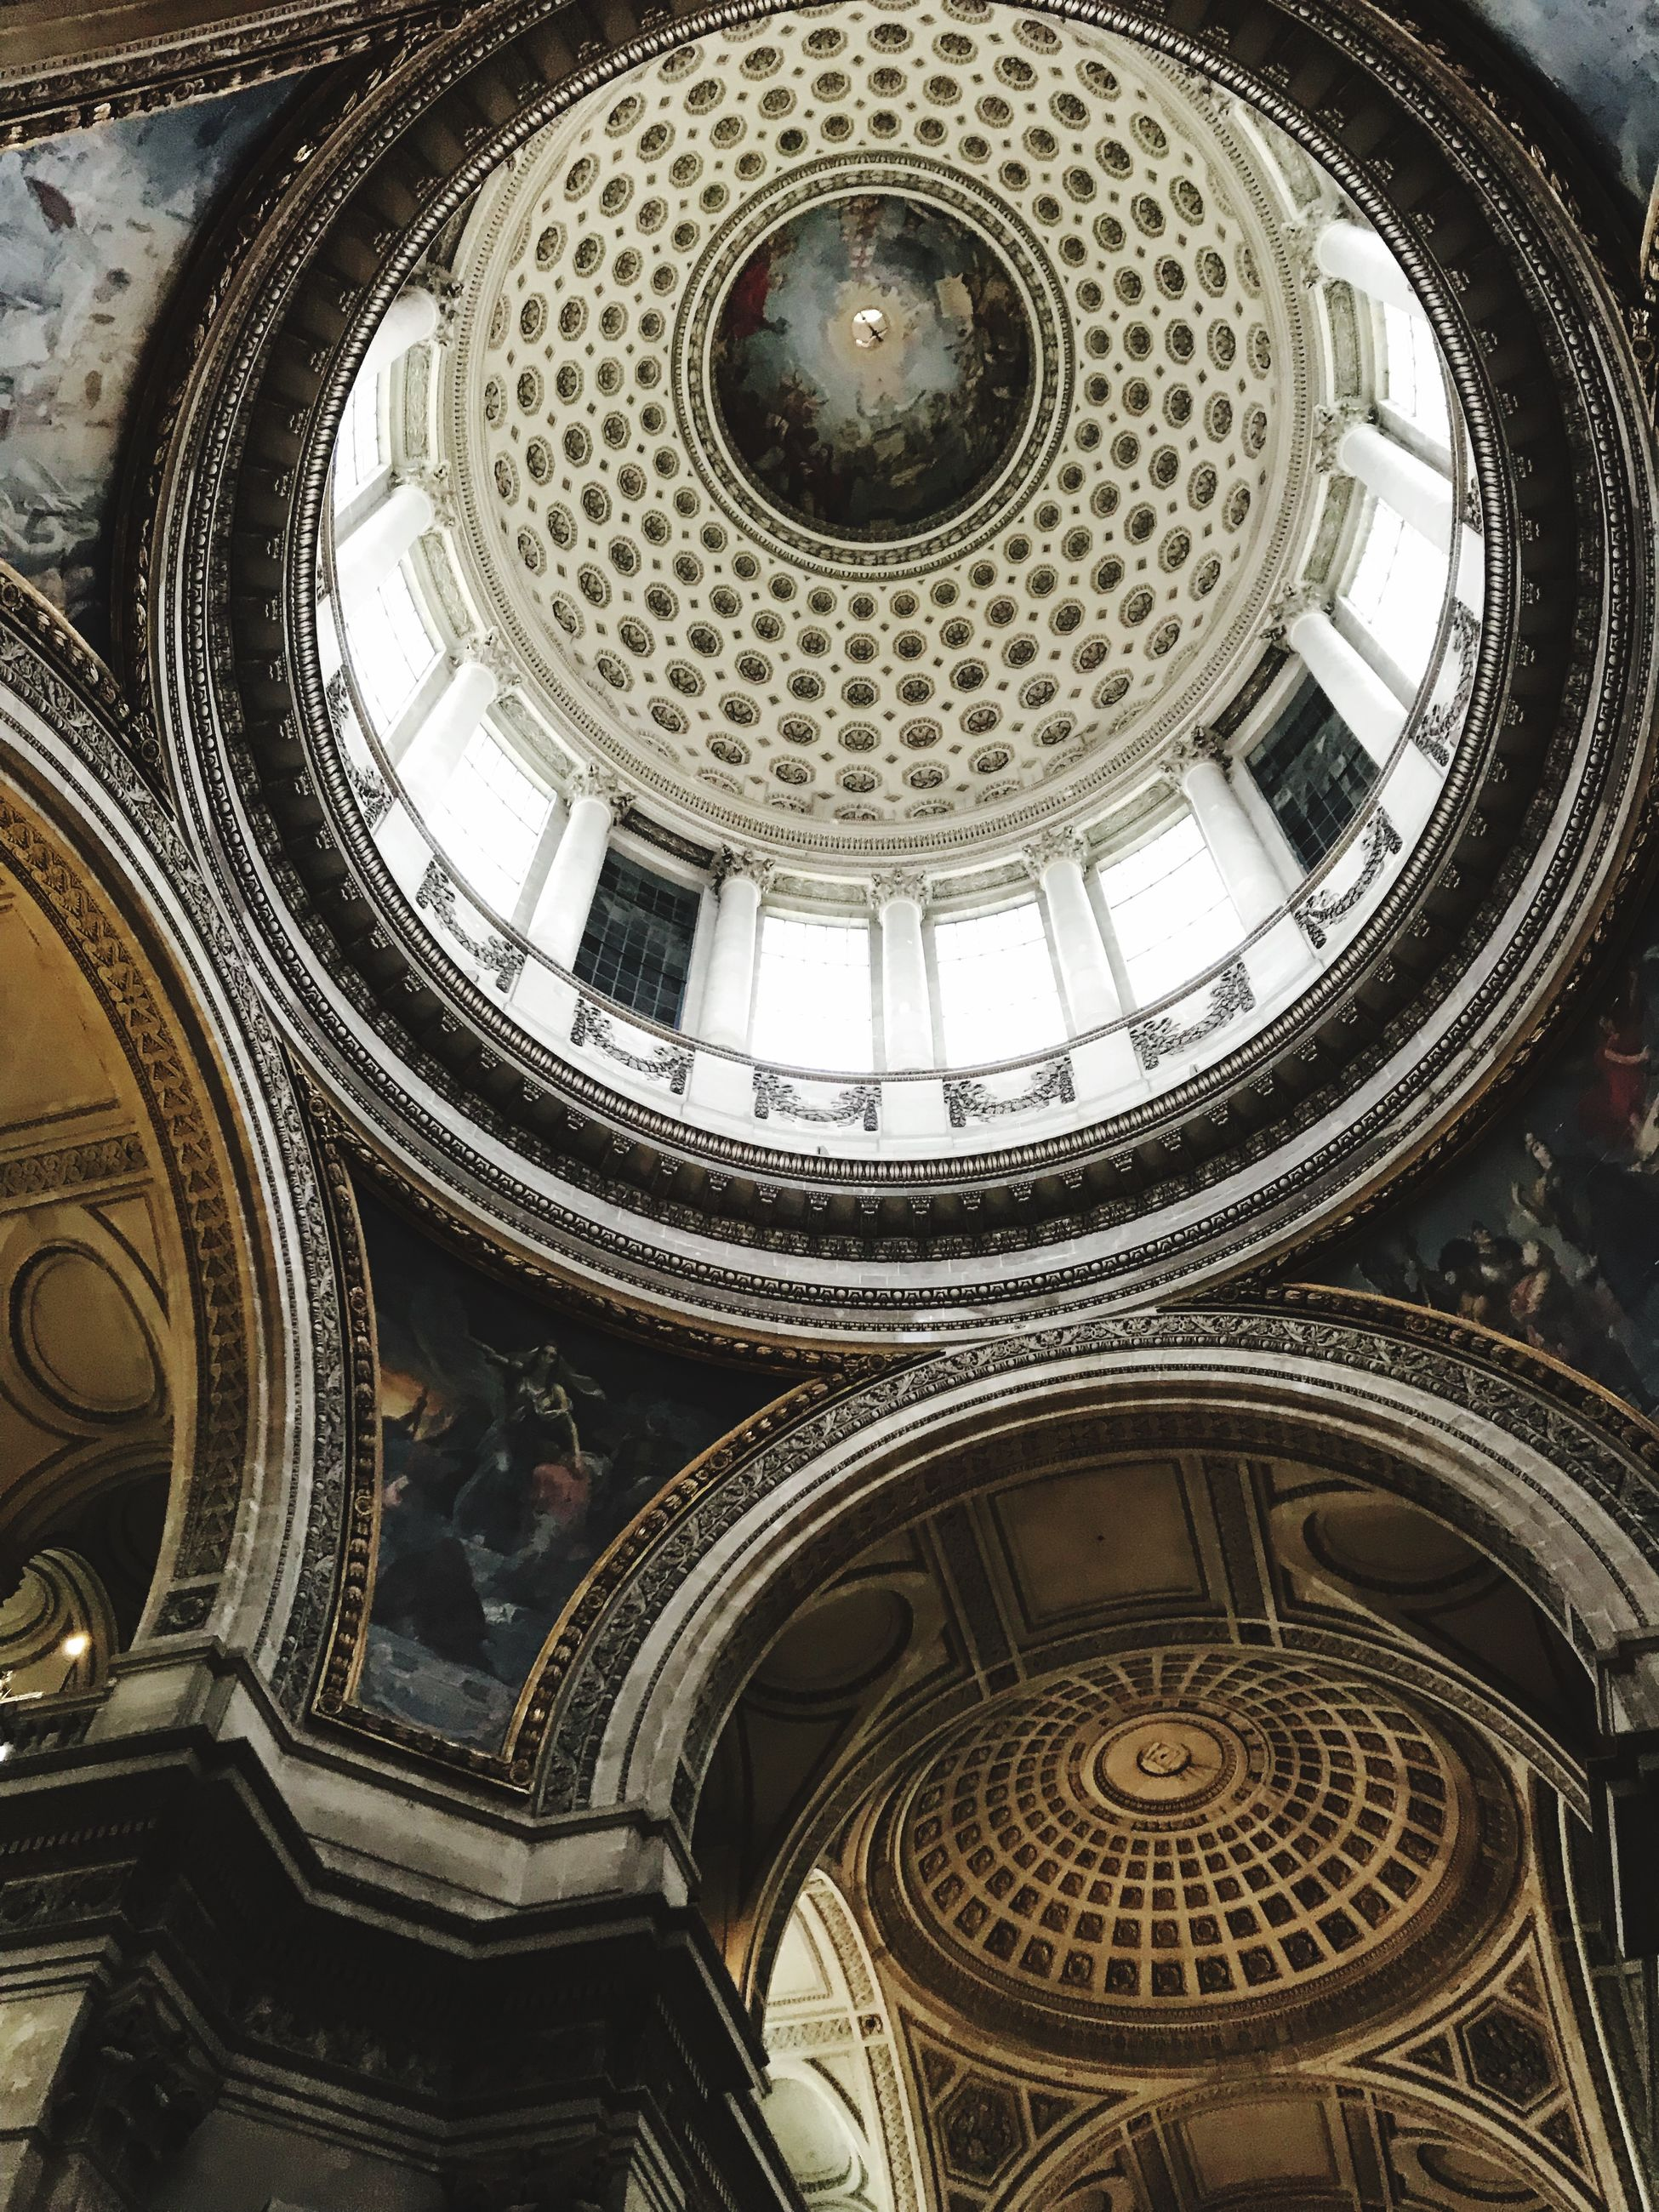 architecture, built structure, low angle view, dome, place of worship, ornate, religion, travel destinations, architectural feature, no people, spirituality, day, indoors, cupola